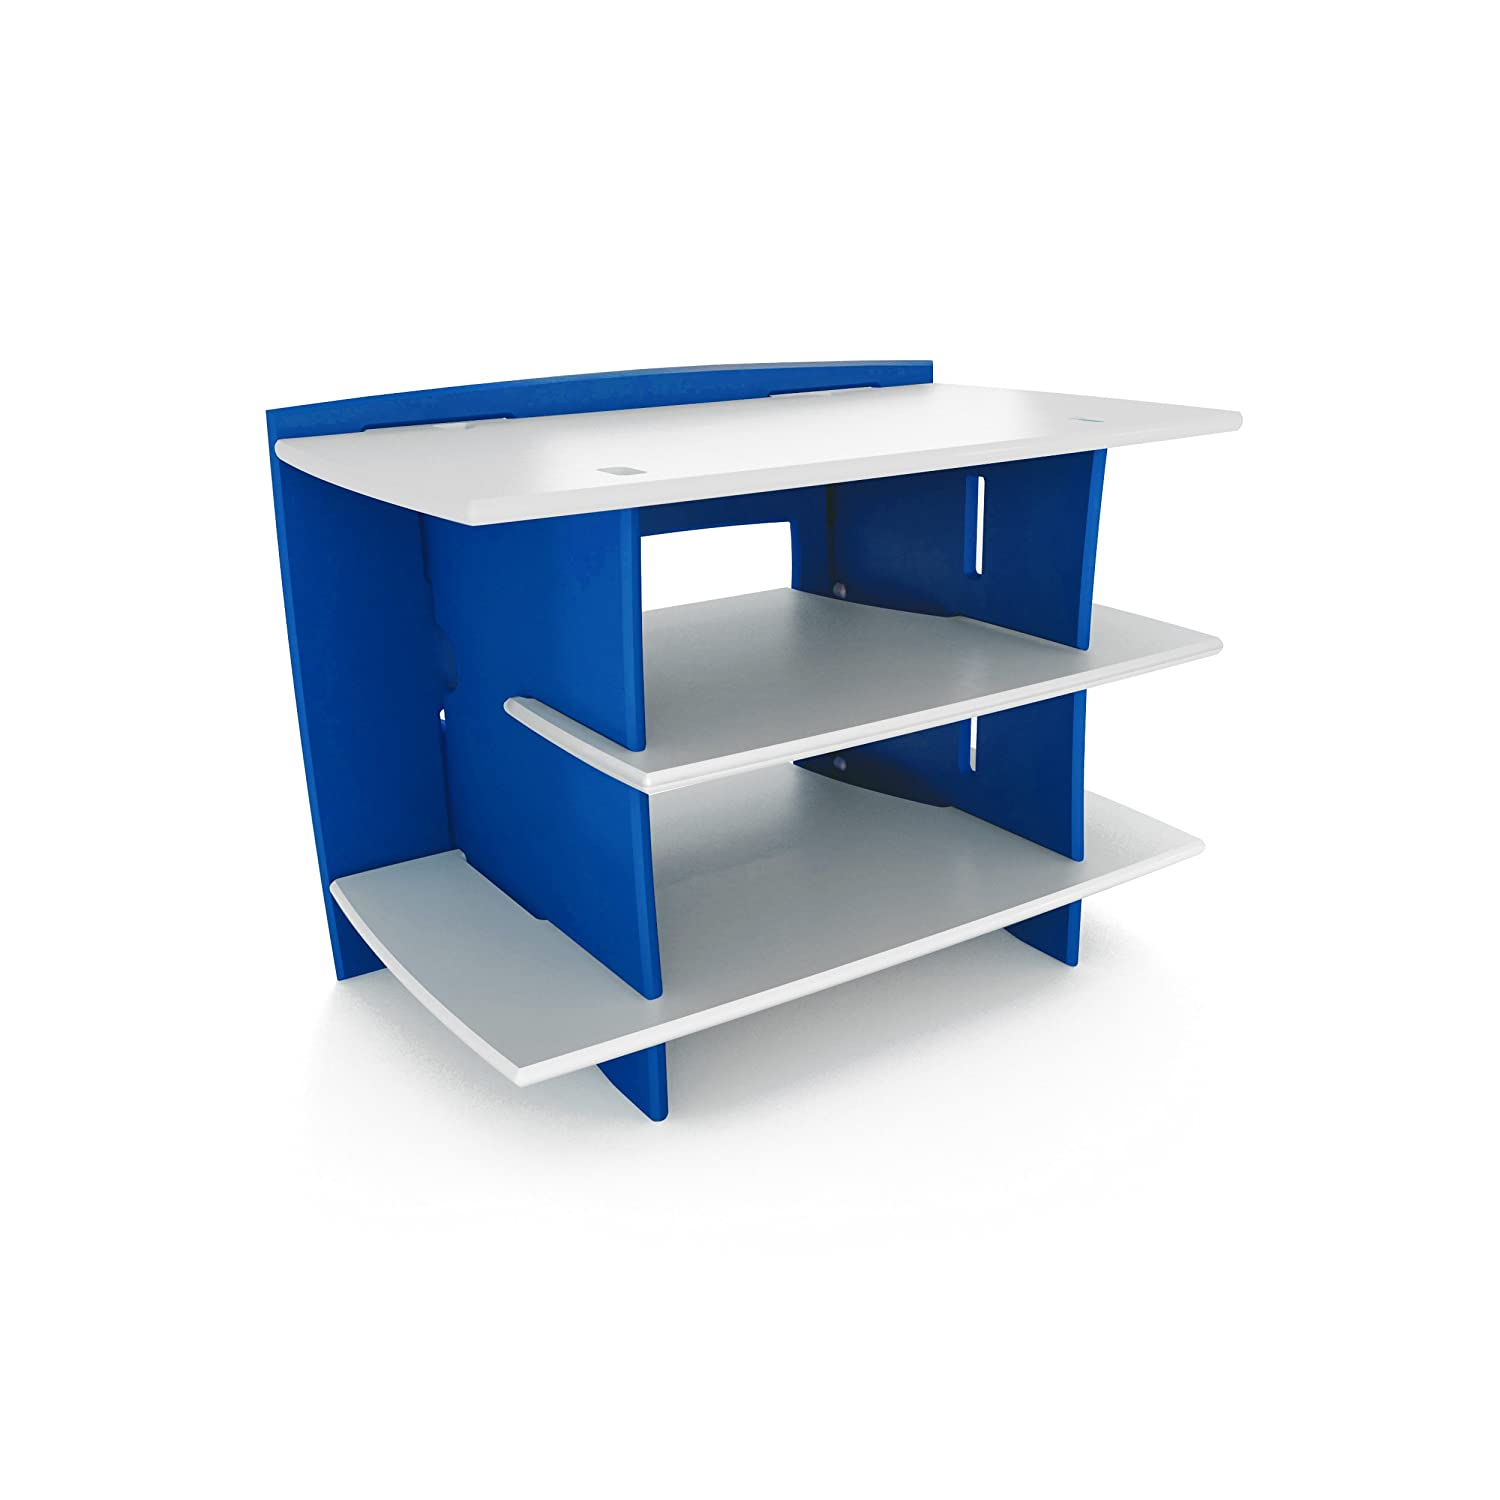 Legar Furniture Kids Gaming and TV Media Stand, Standard Storage Unit for Bedroom, Basement, and Playroom, Blue and White